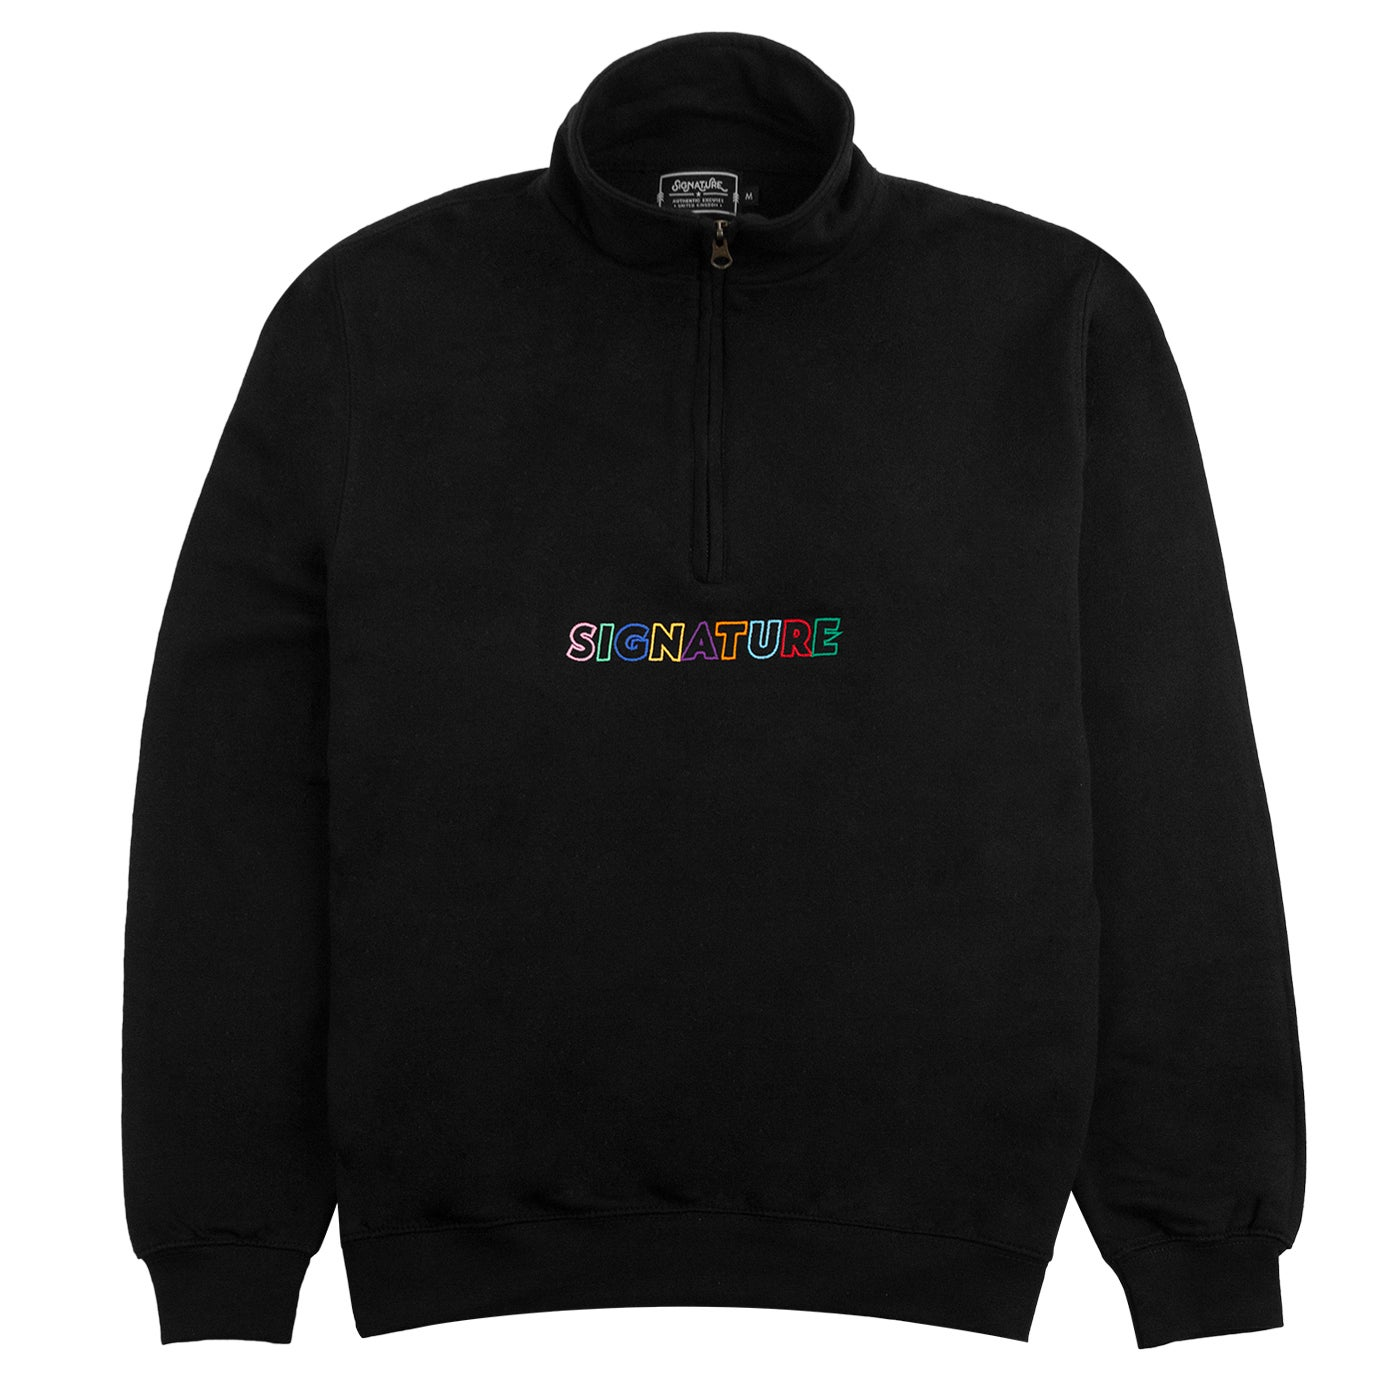 Image of OUTLINE LOGO EMBROIDERED 1/4 ZIP SWEATSHIRT - BLACK / MULTI